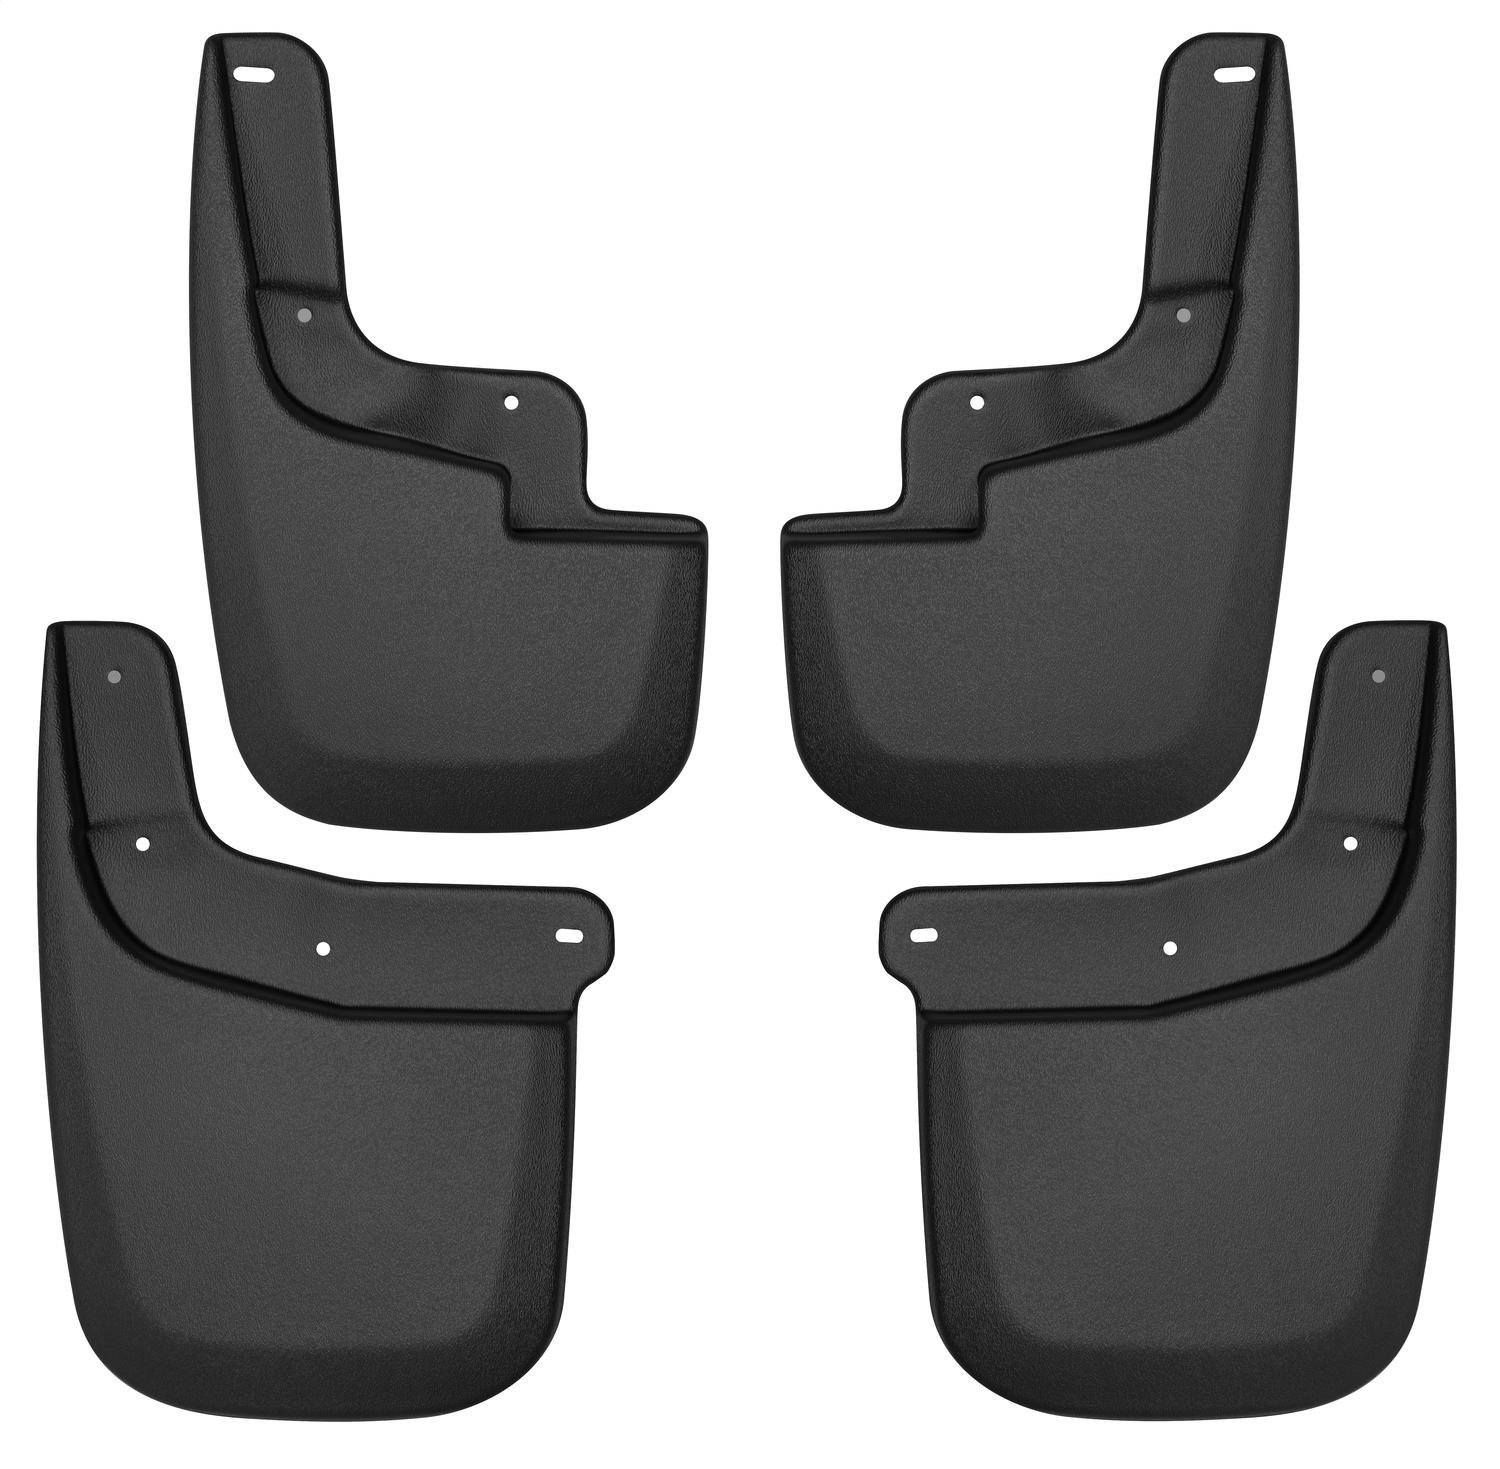 Husky Liners 58236 Black Mud Guards - Set Fits 15-19 Colorado/Canyon without Fender Flares or Cladding, 4 Pack,